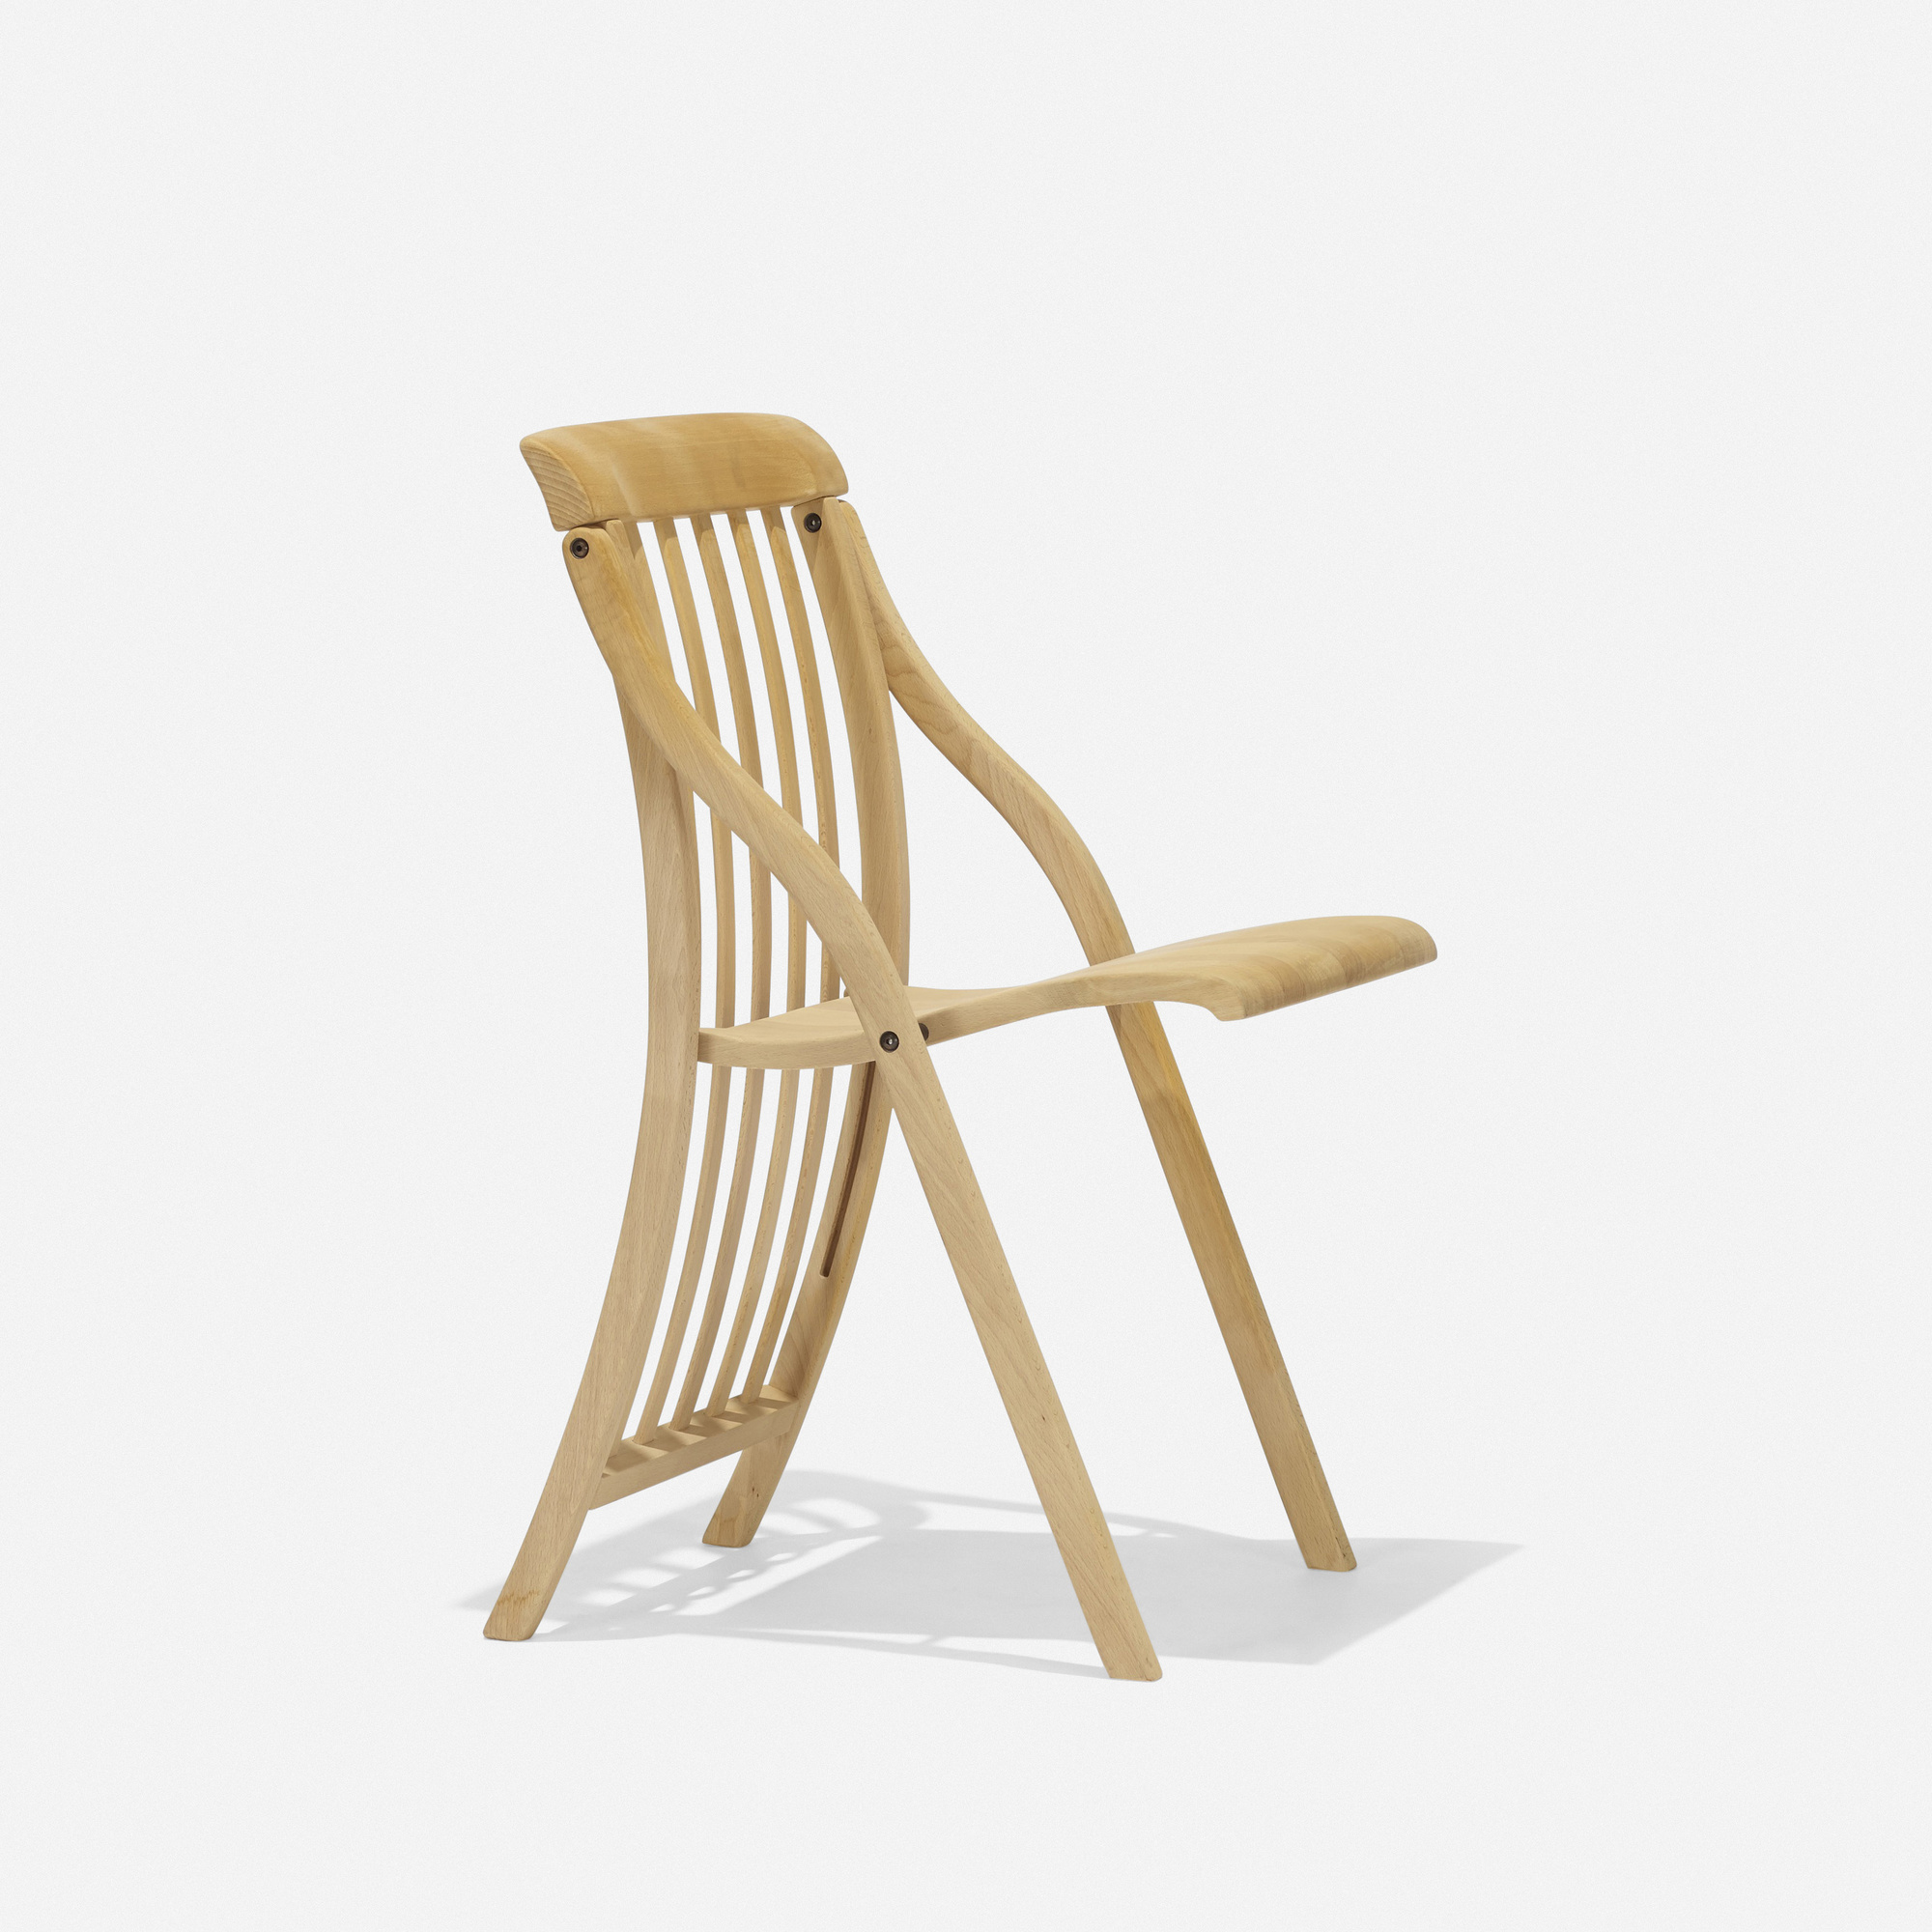 355: Michele de Lucchi / Sedia folding chair (2 of 3)